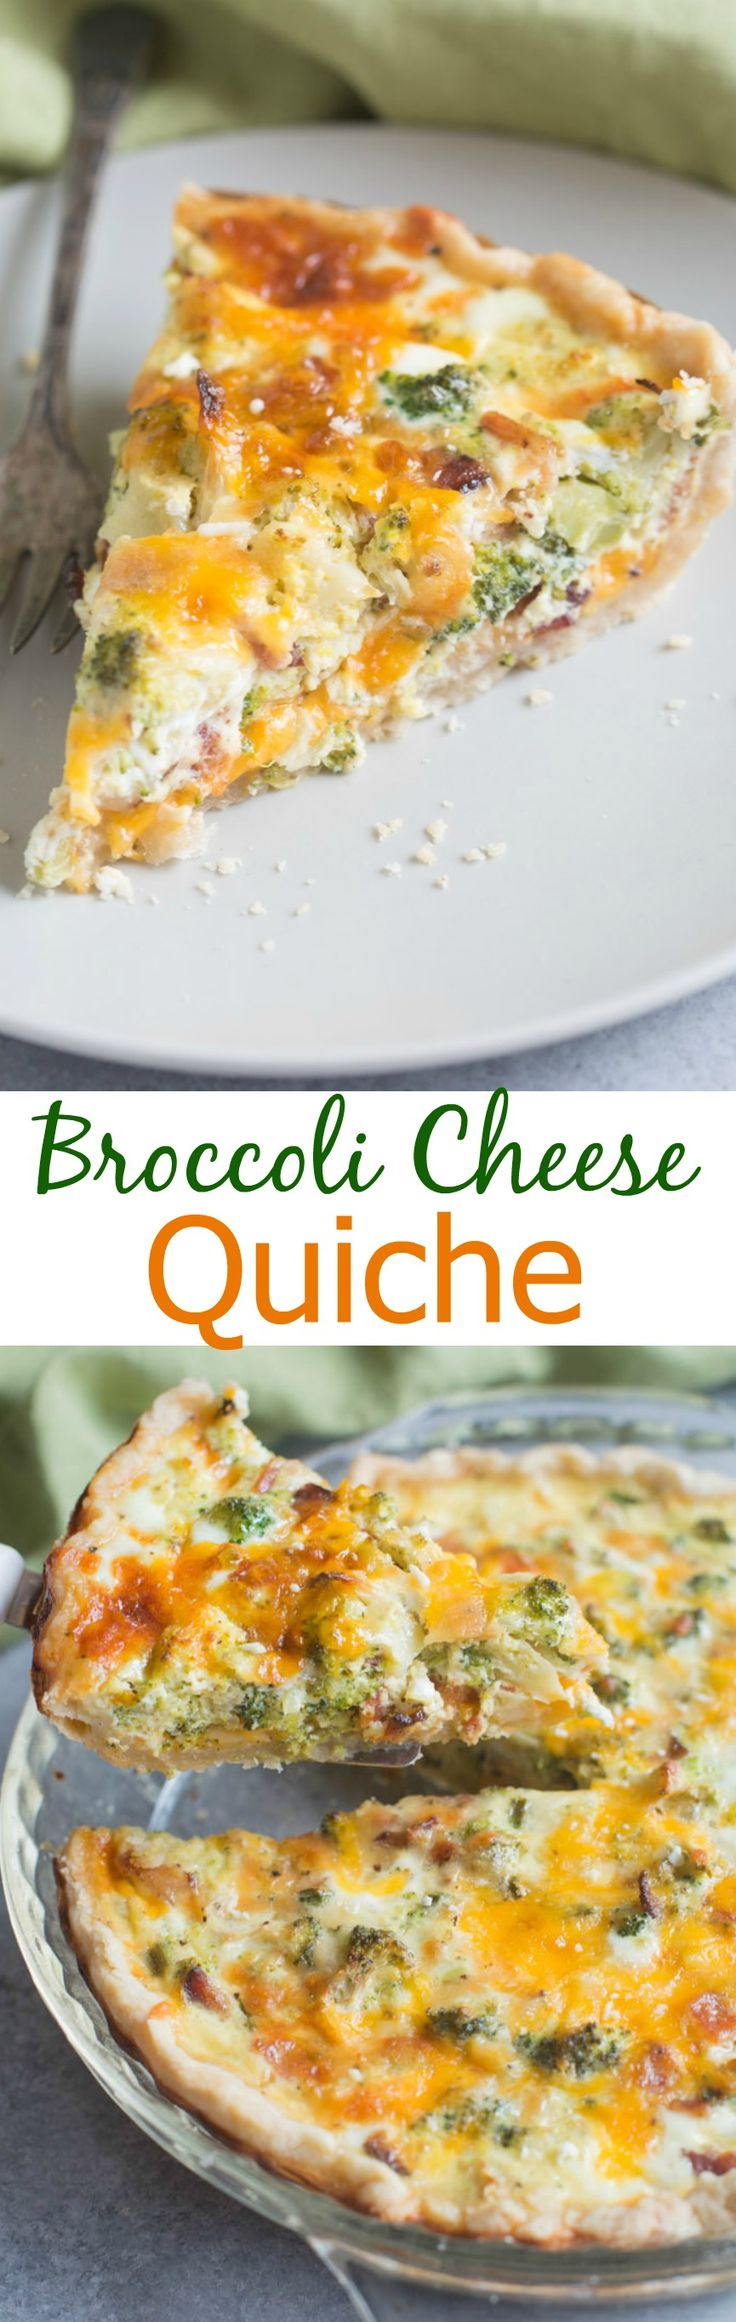 Broccoli Cheese Quiche made in my favorite homemade pie crust. Family and…                                                                                                                                                                                 More